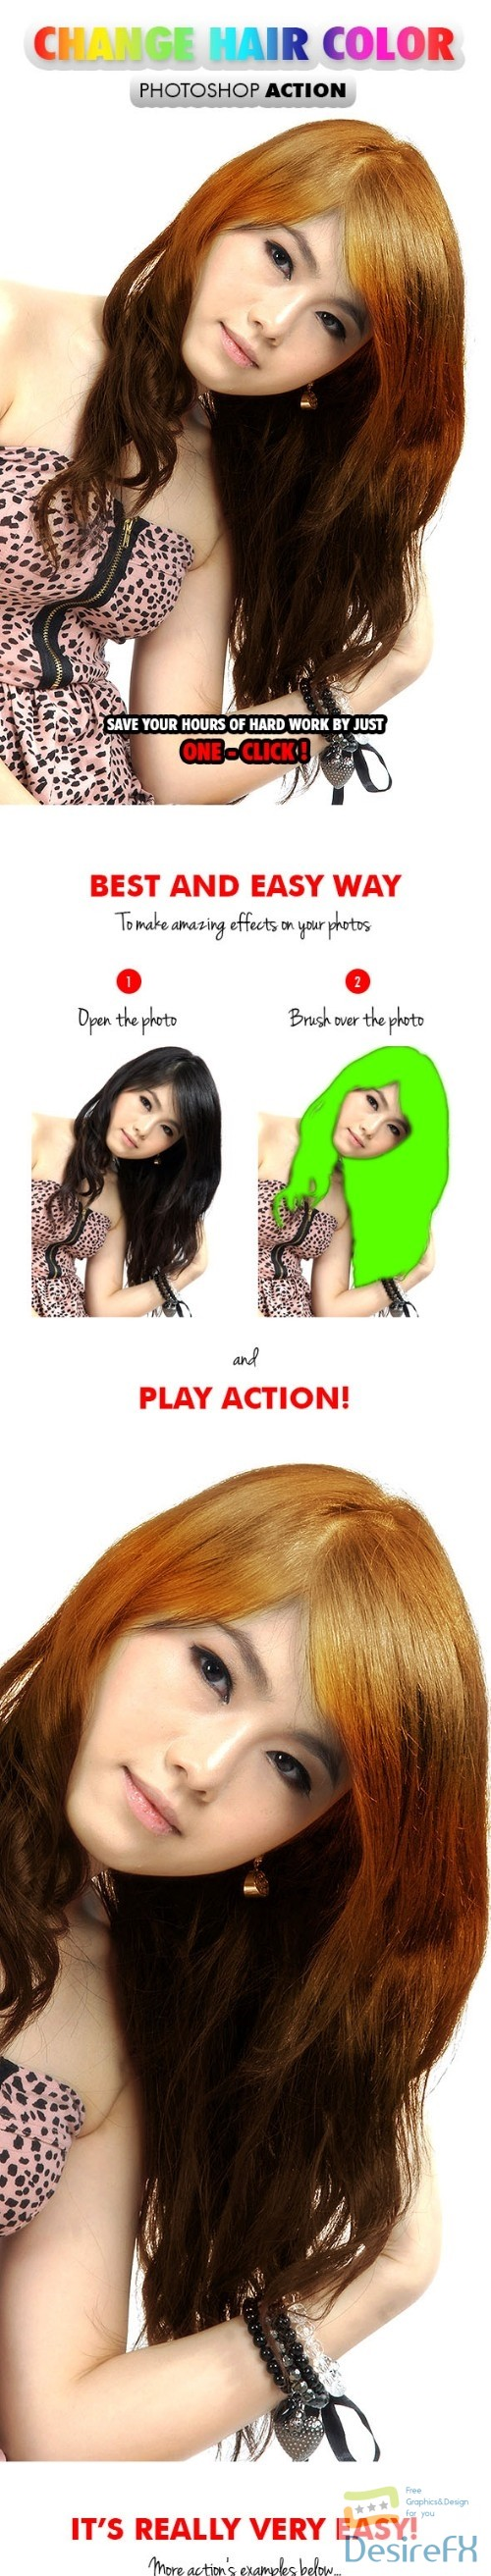 actions-atn - Change Hair Color - Photoshop Action 17682735